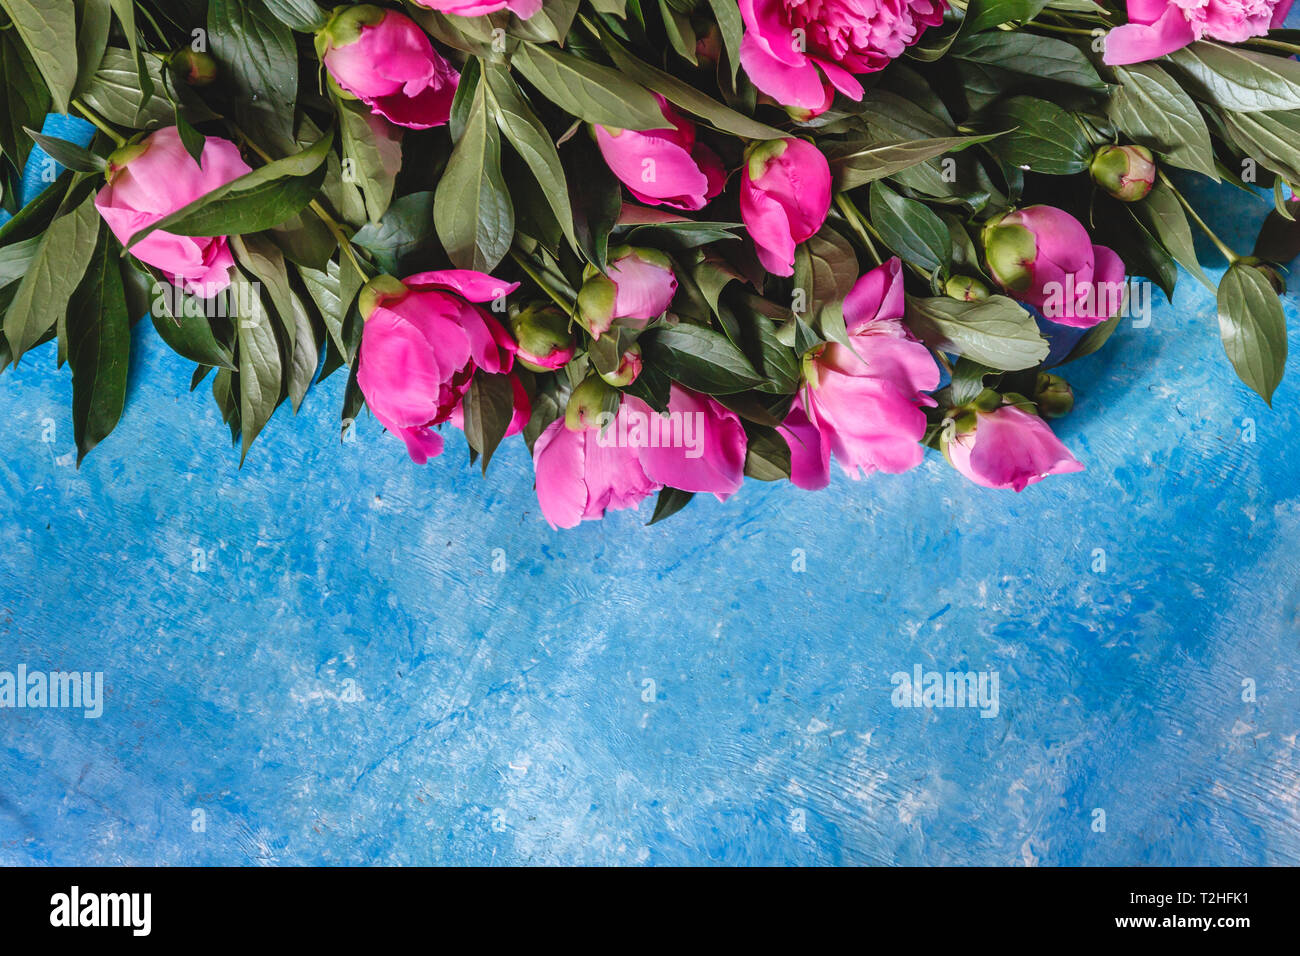 Bouquet Of Pink Purple Peonies In A Vase On A Blue Marble Concrete Background View From Above Flat Lay Stock Photo Alamy